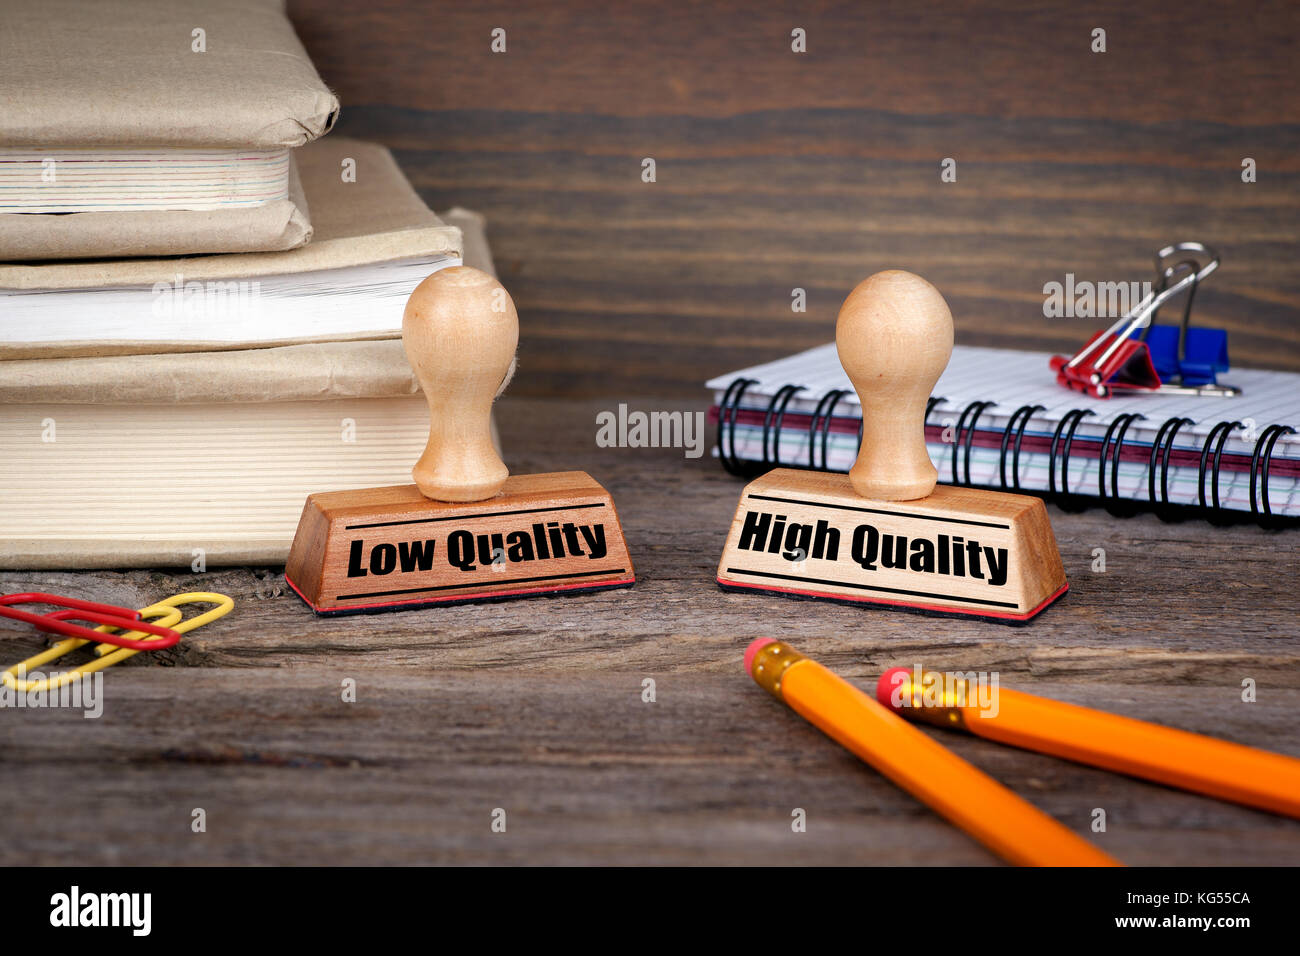 low quality and high quality. Rubber Stamp on desk in the Office. Business and work background - Stock Image